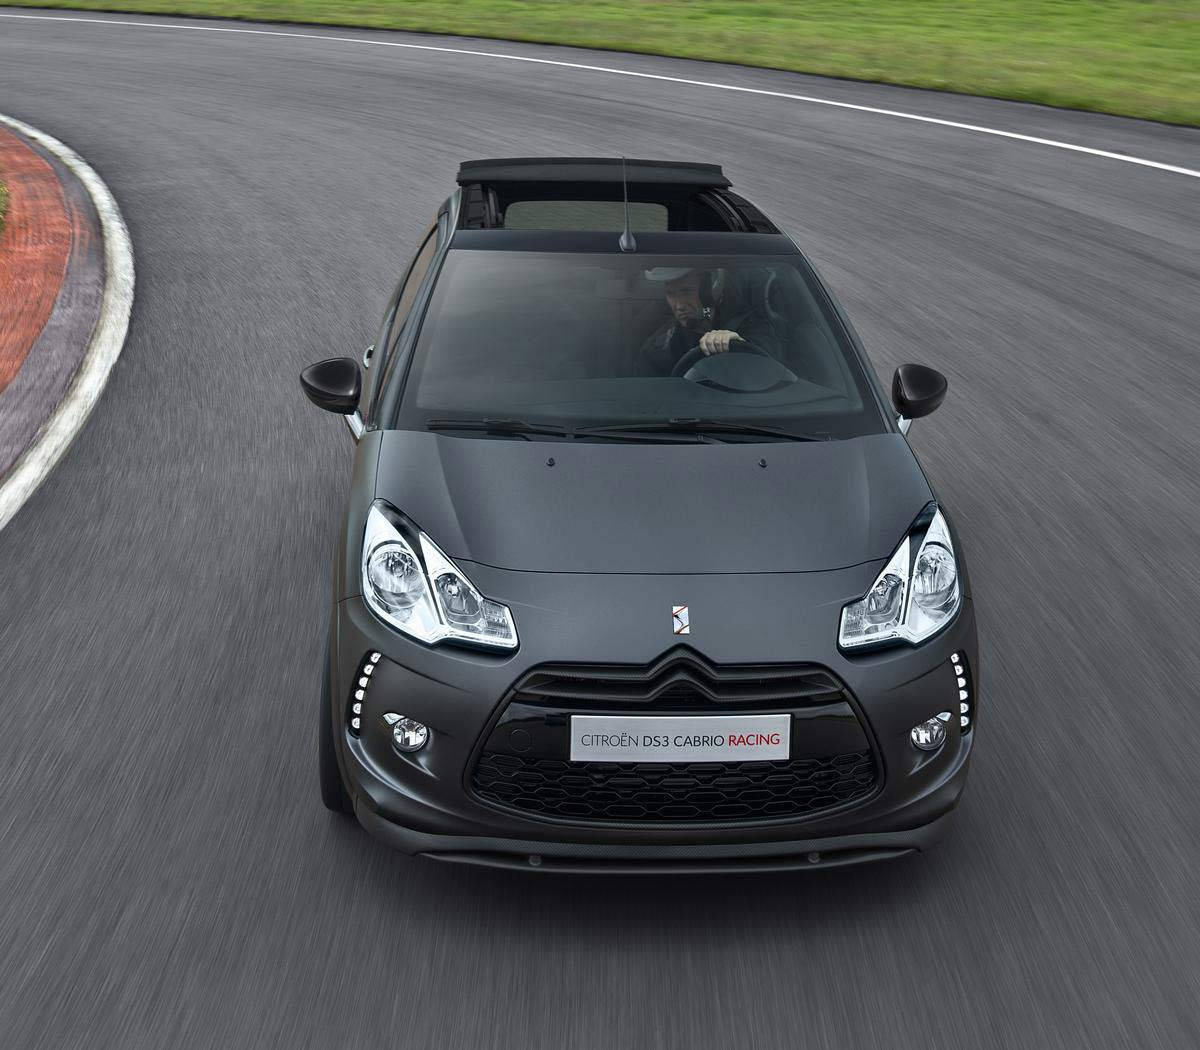 _Citroen_DS3_Cabrio_Racing_front